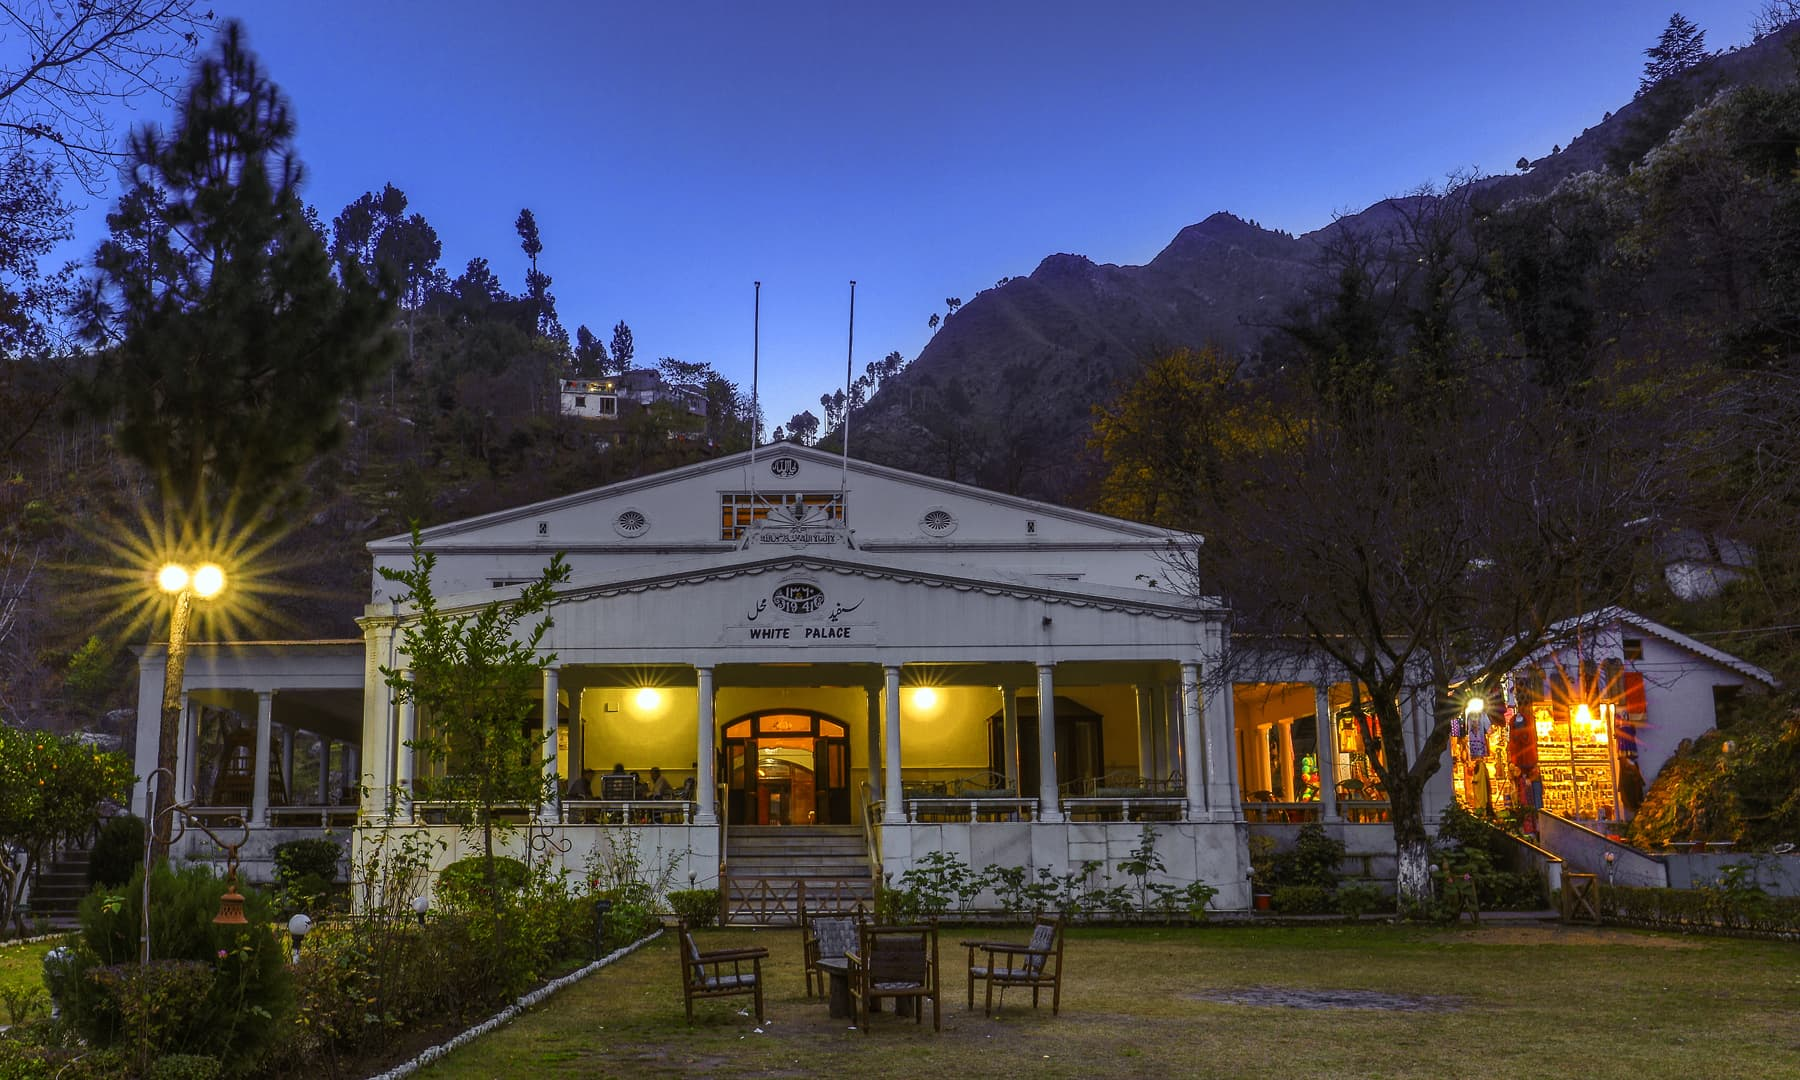 The White Palace in Swat.